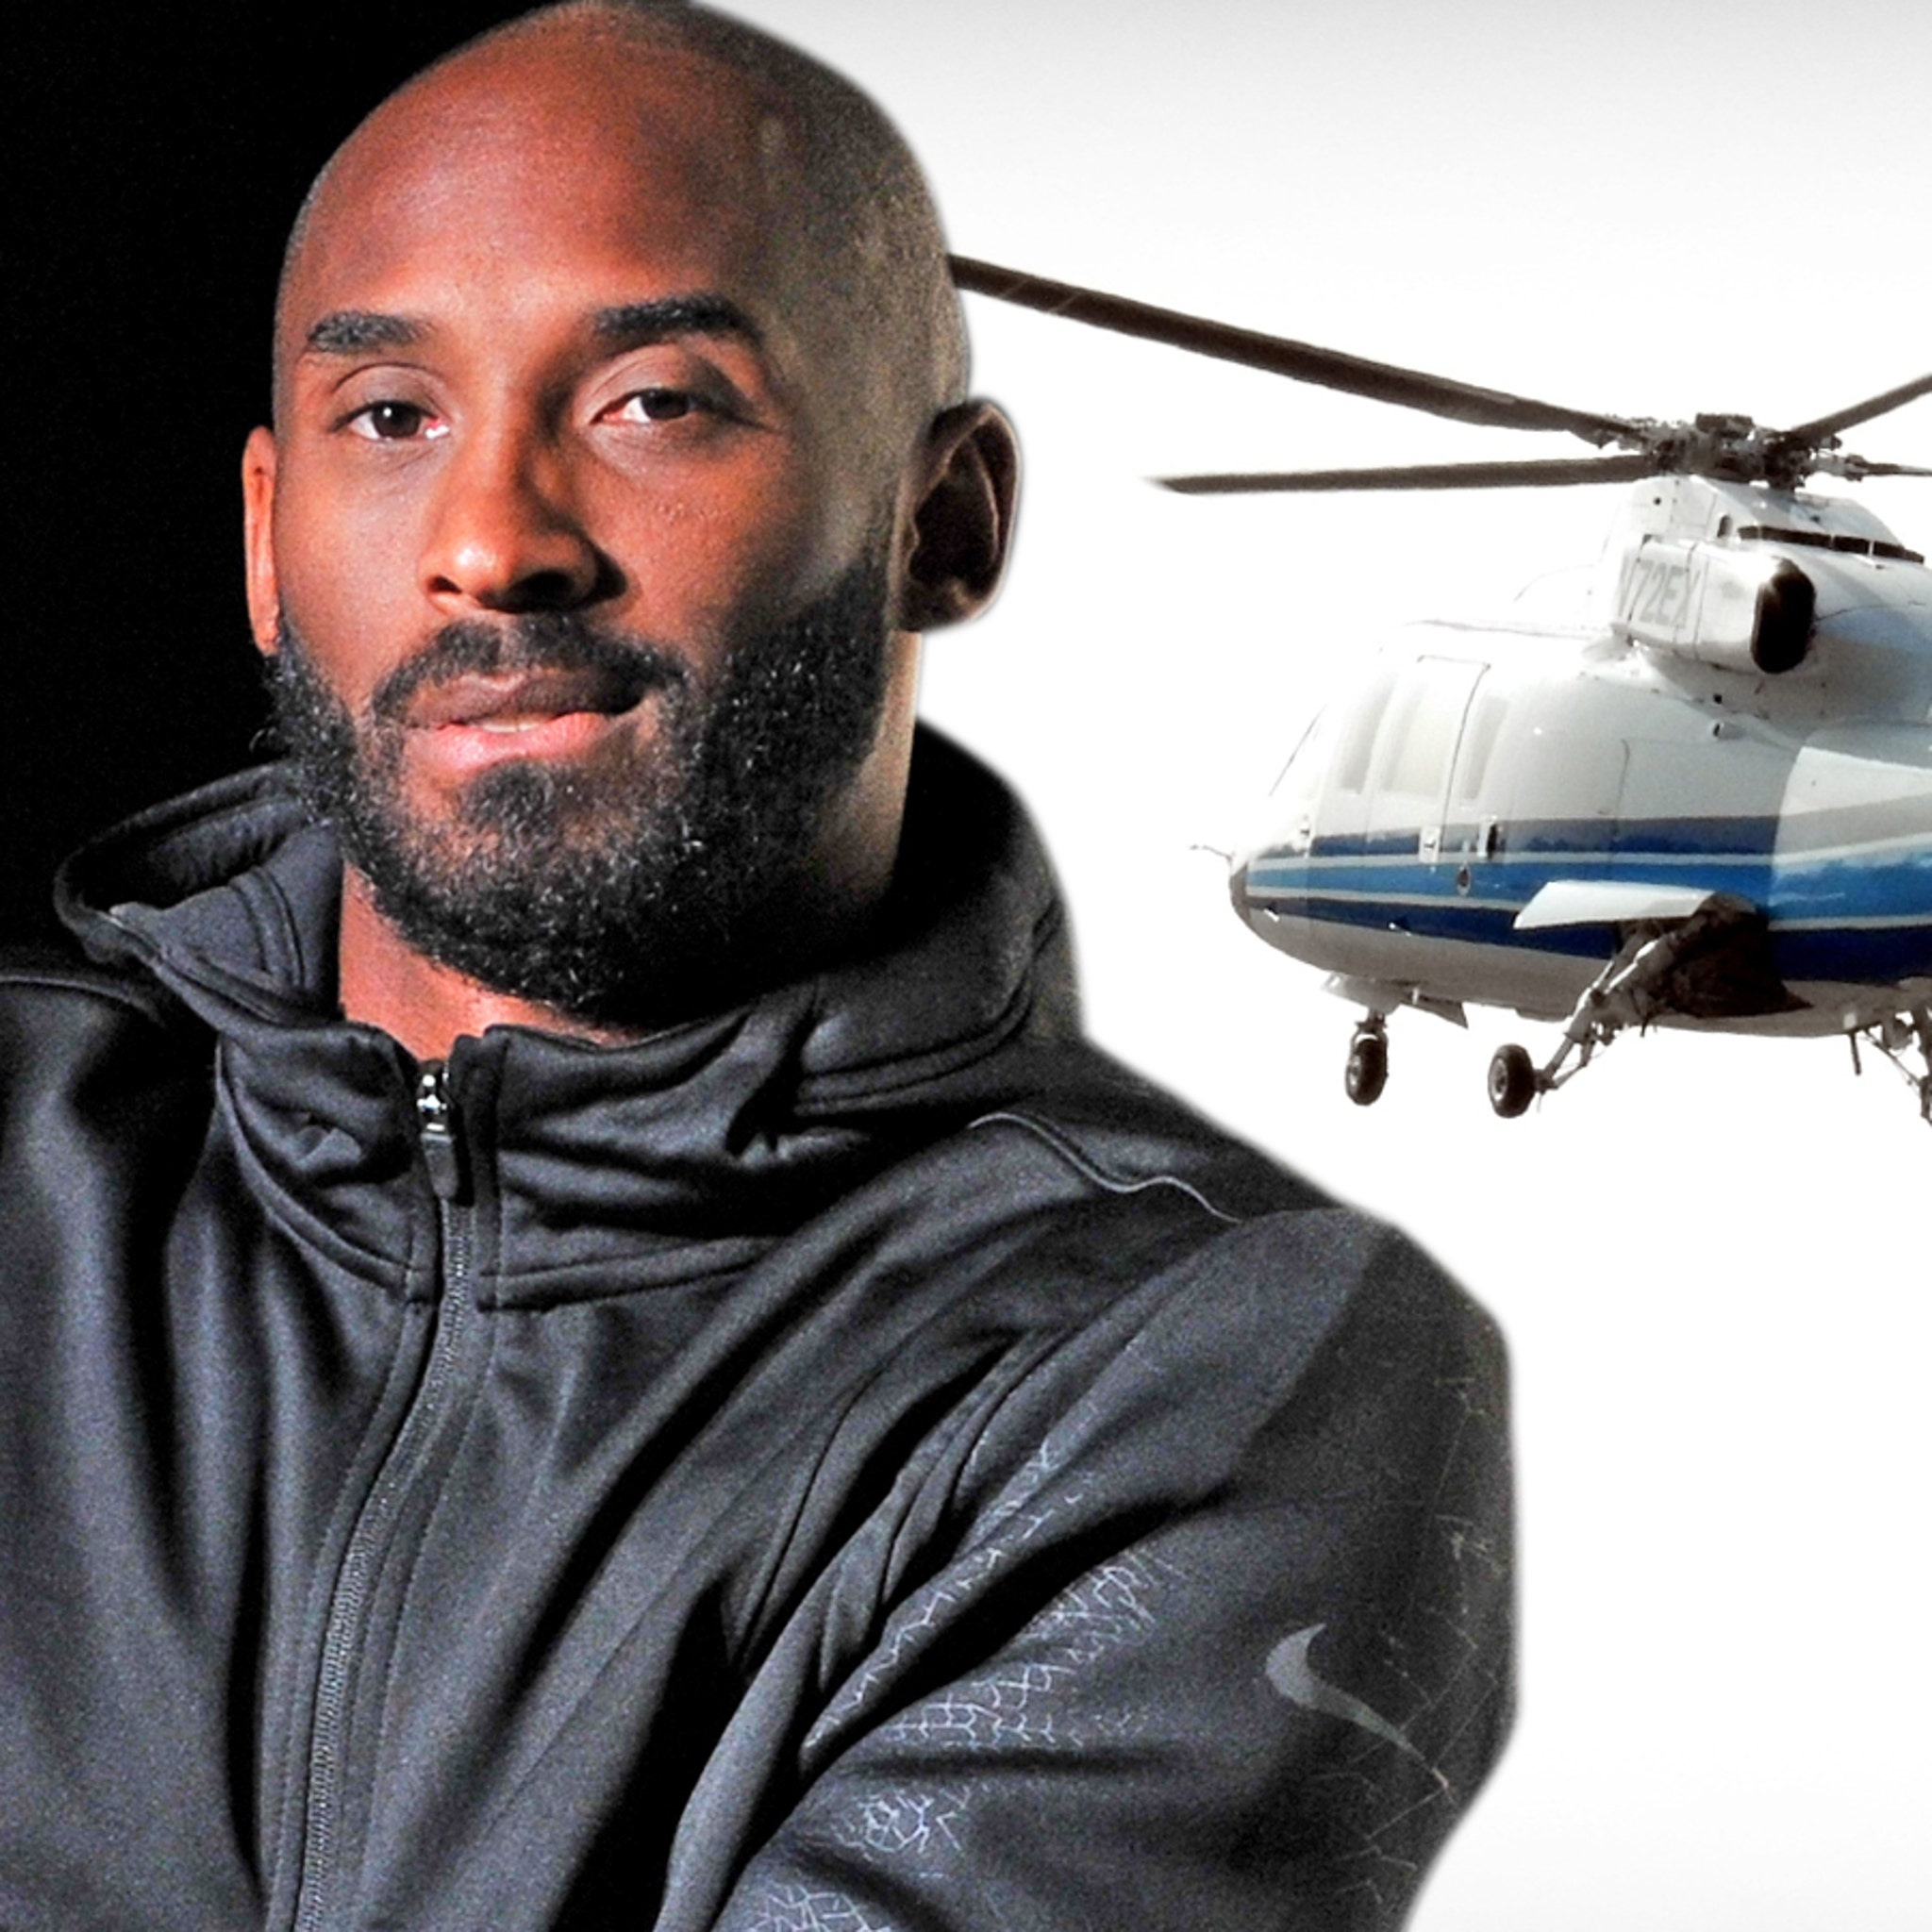 Makers of Kobe Bryant's Helicopter Urged Customers to Add Warning System